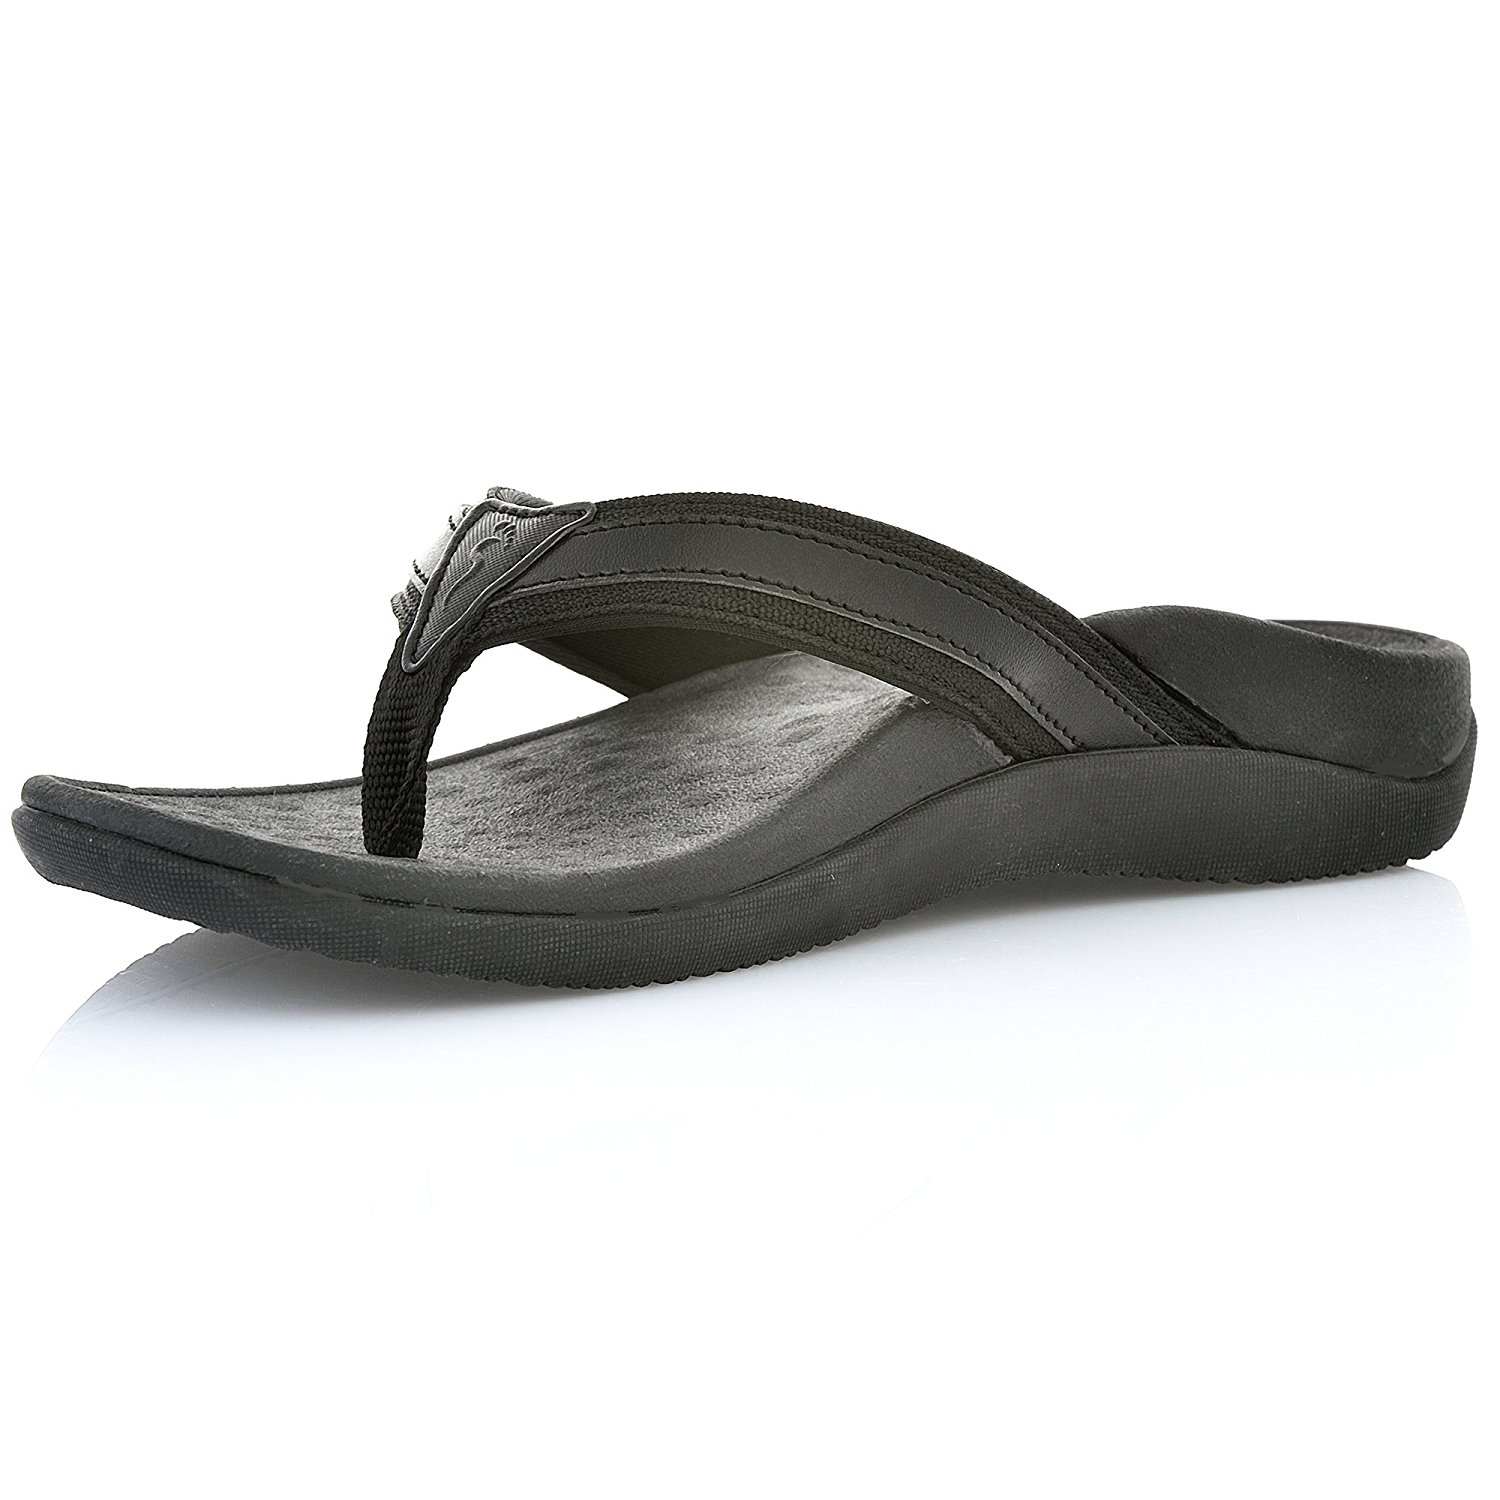 5. Footminders Baltra Sandals